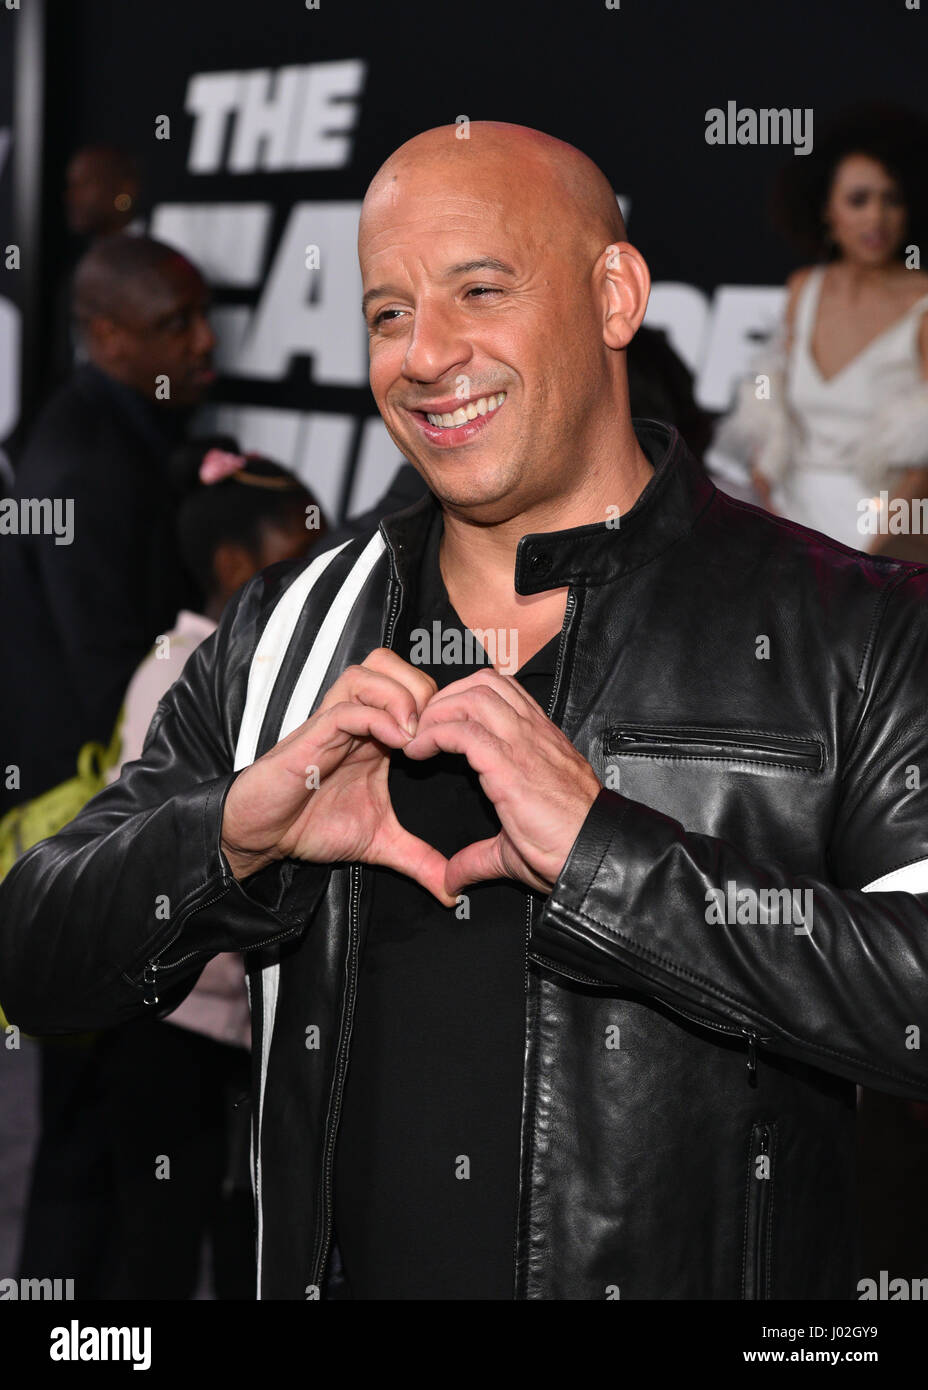 New York, USA. 8th April, 2017. Vin Diesel attends 'The Fate Of The Furious' New York Premiere at Radio - Stock Image